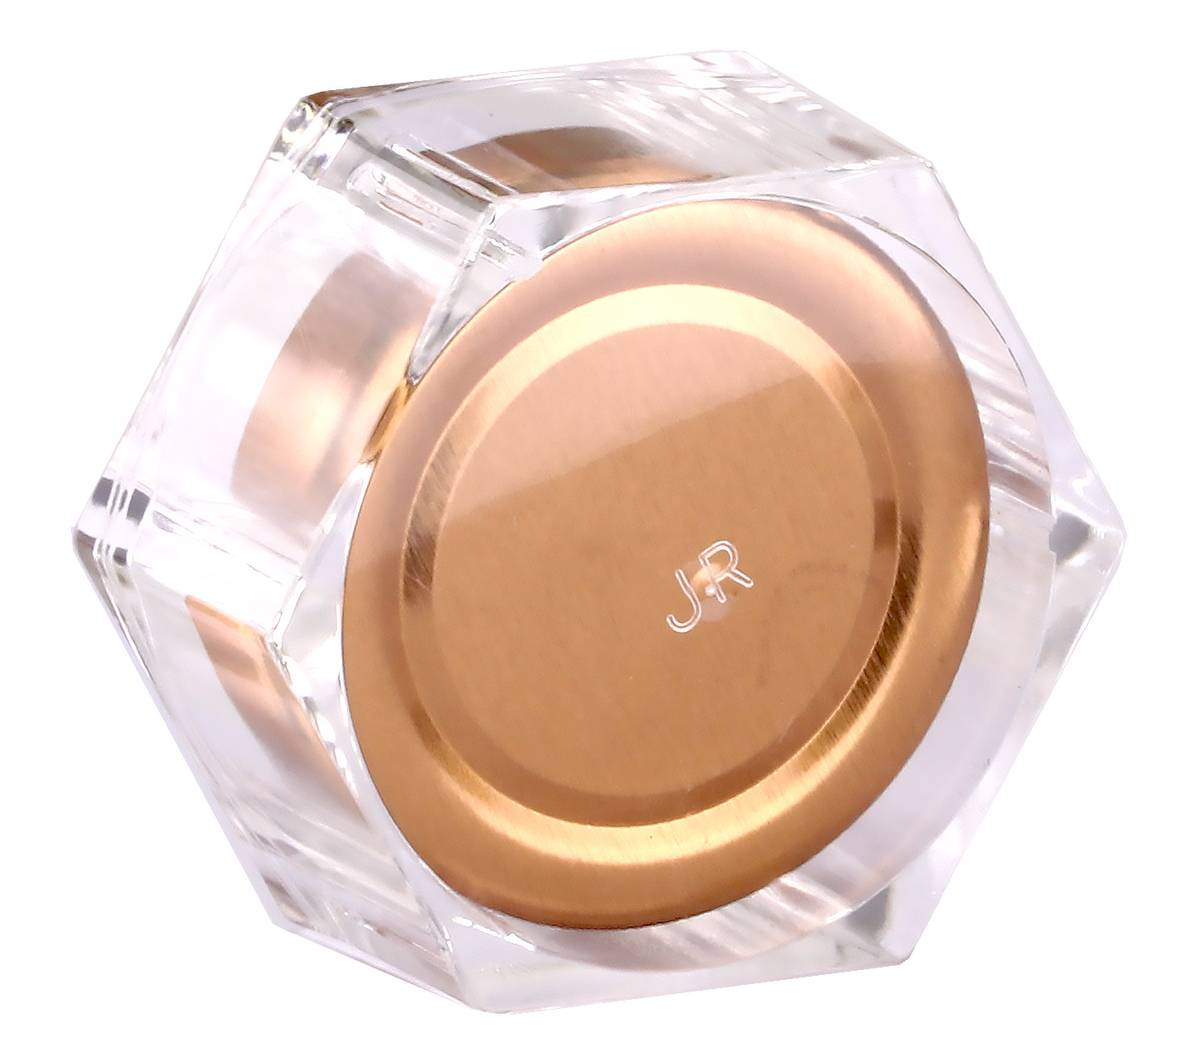 Deluxe Honey Jar 280ml / 400gm size Hexagonal with Silver or Rose Gold lid